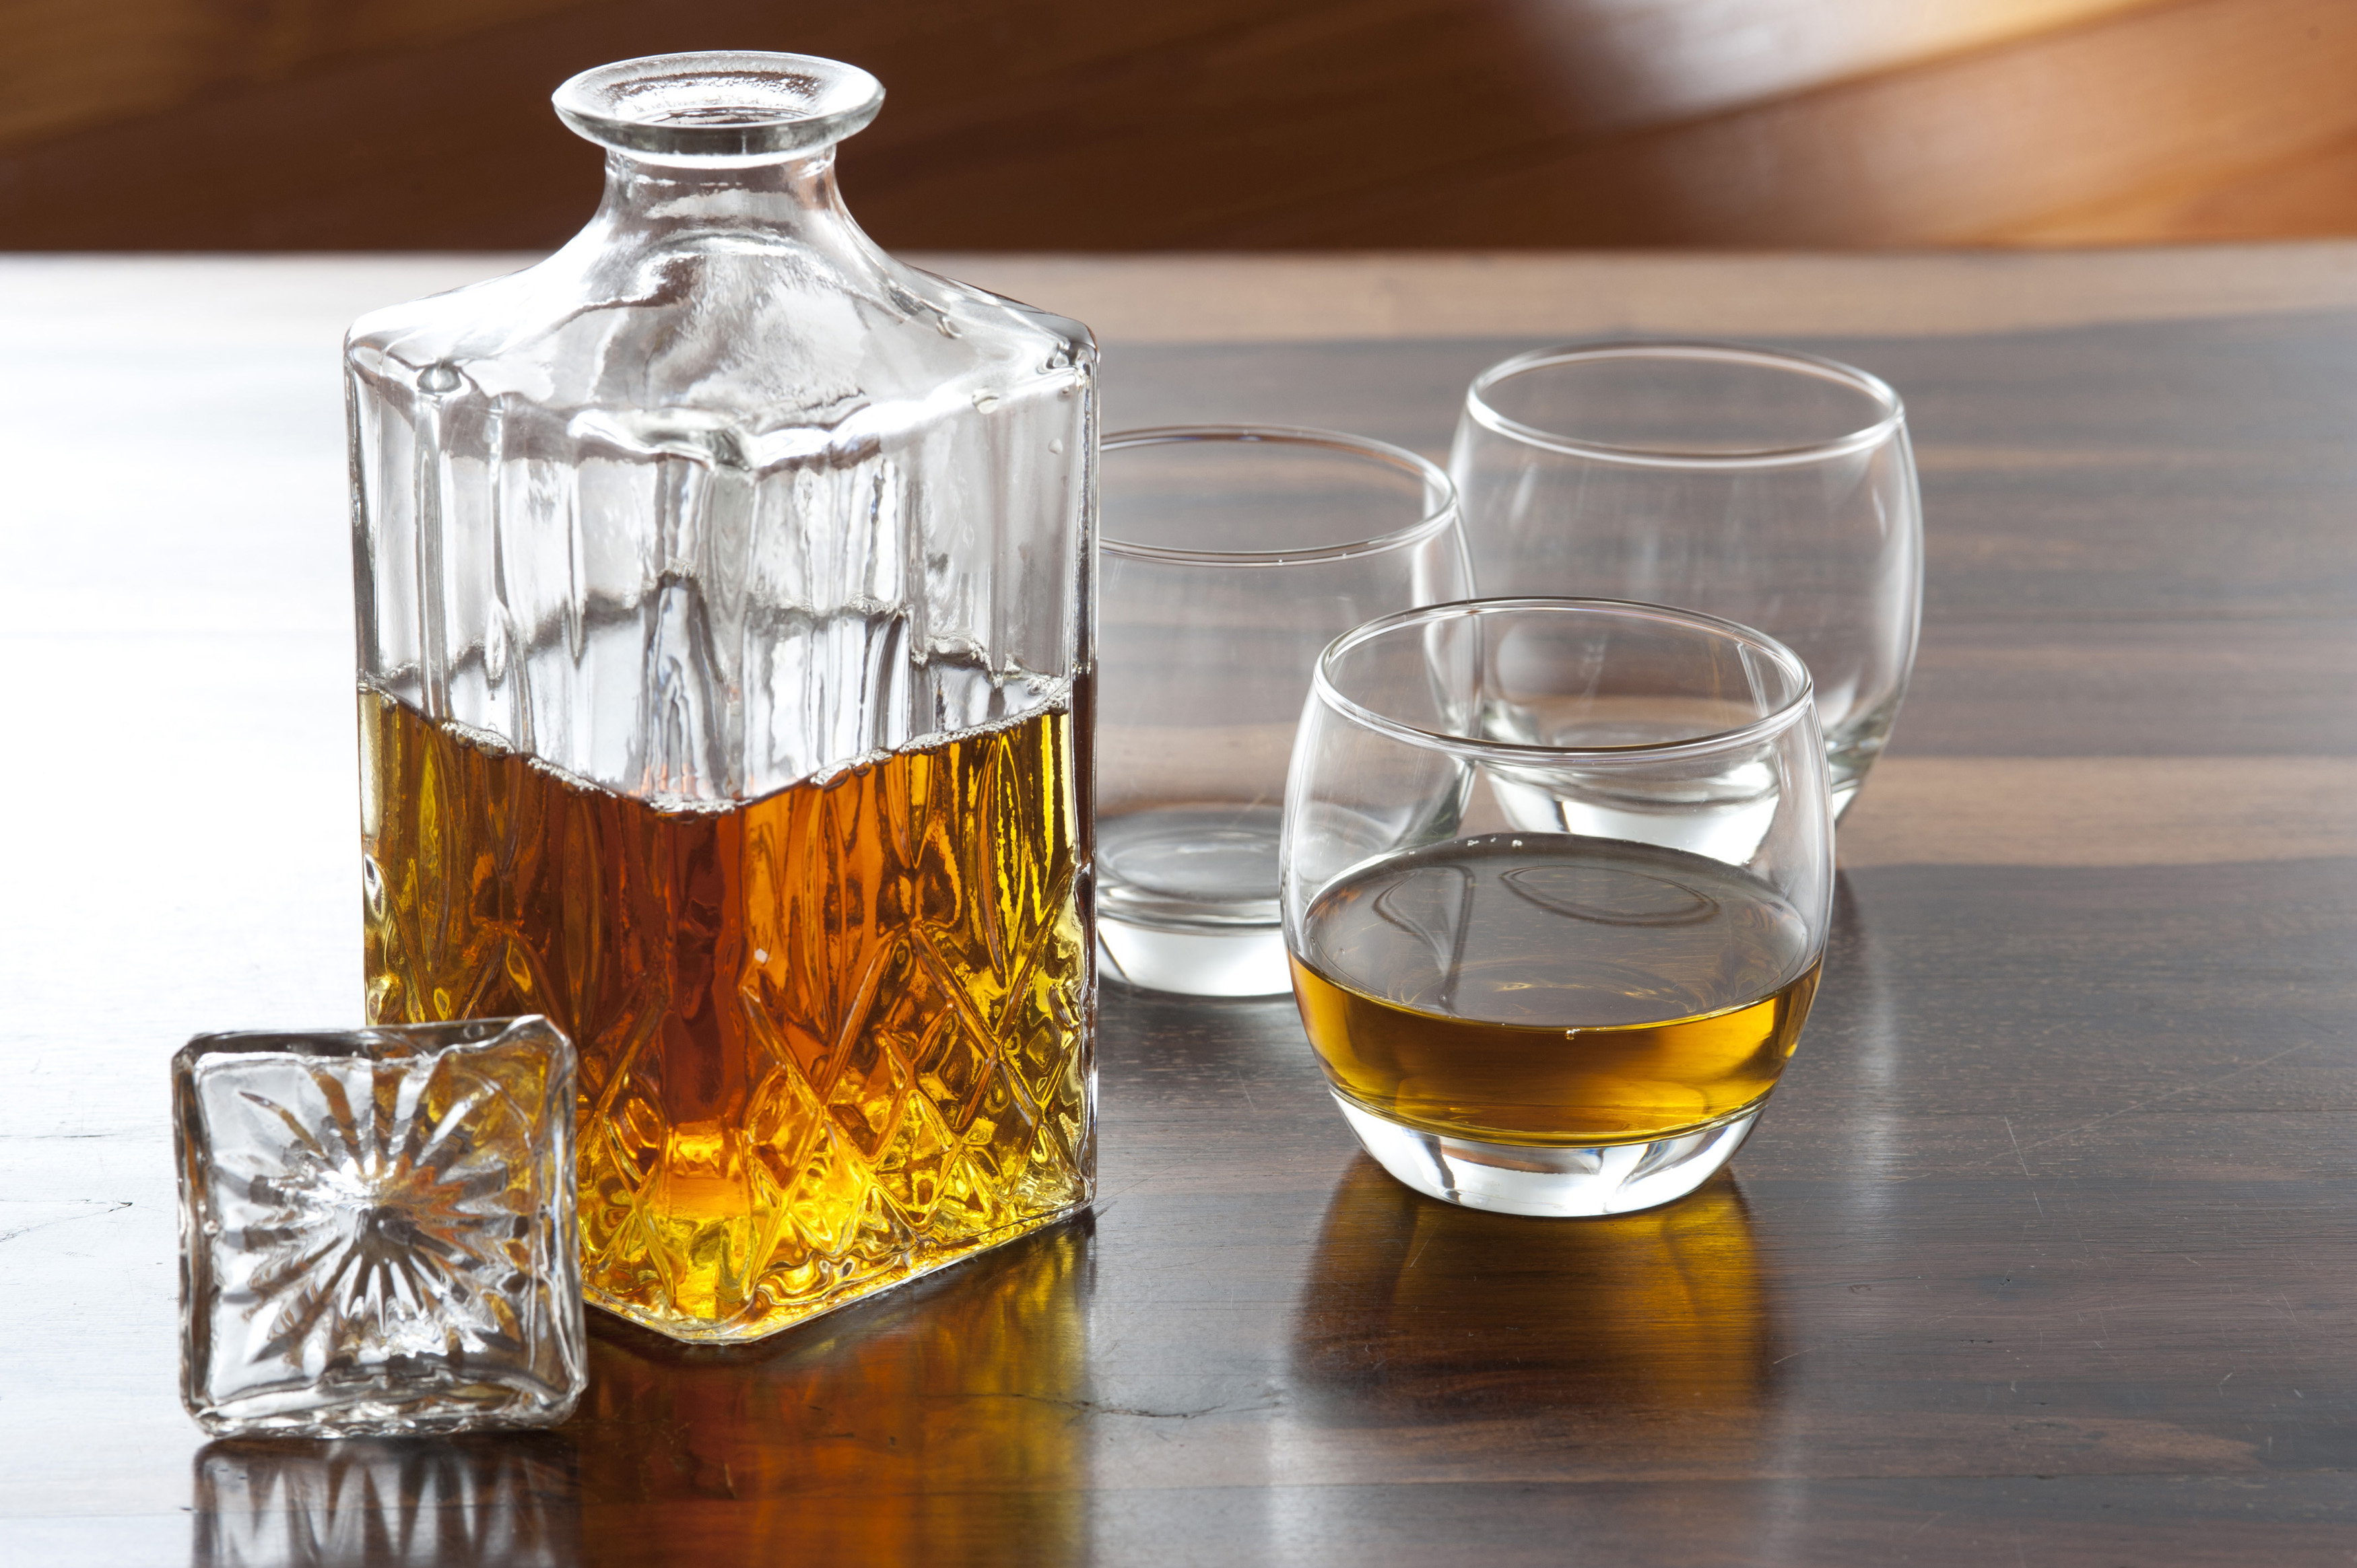 Free Stock Photo 11609 Bottle Of Whisky And Three Glasses